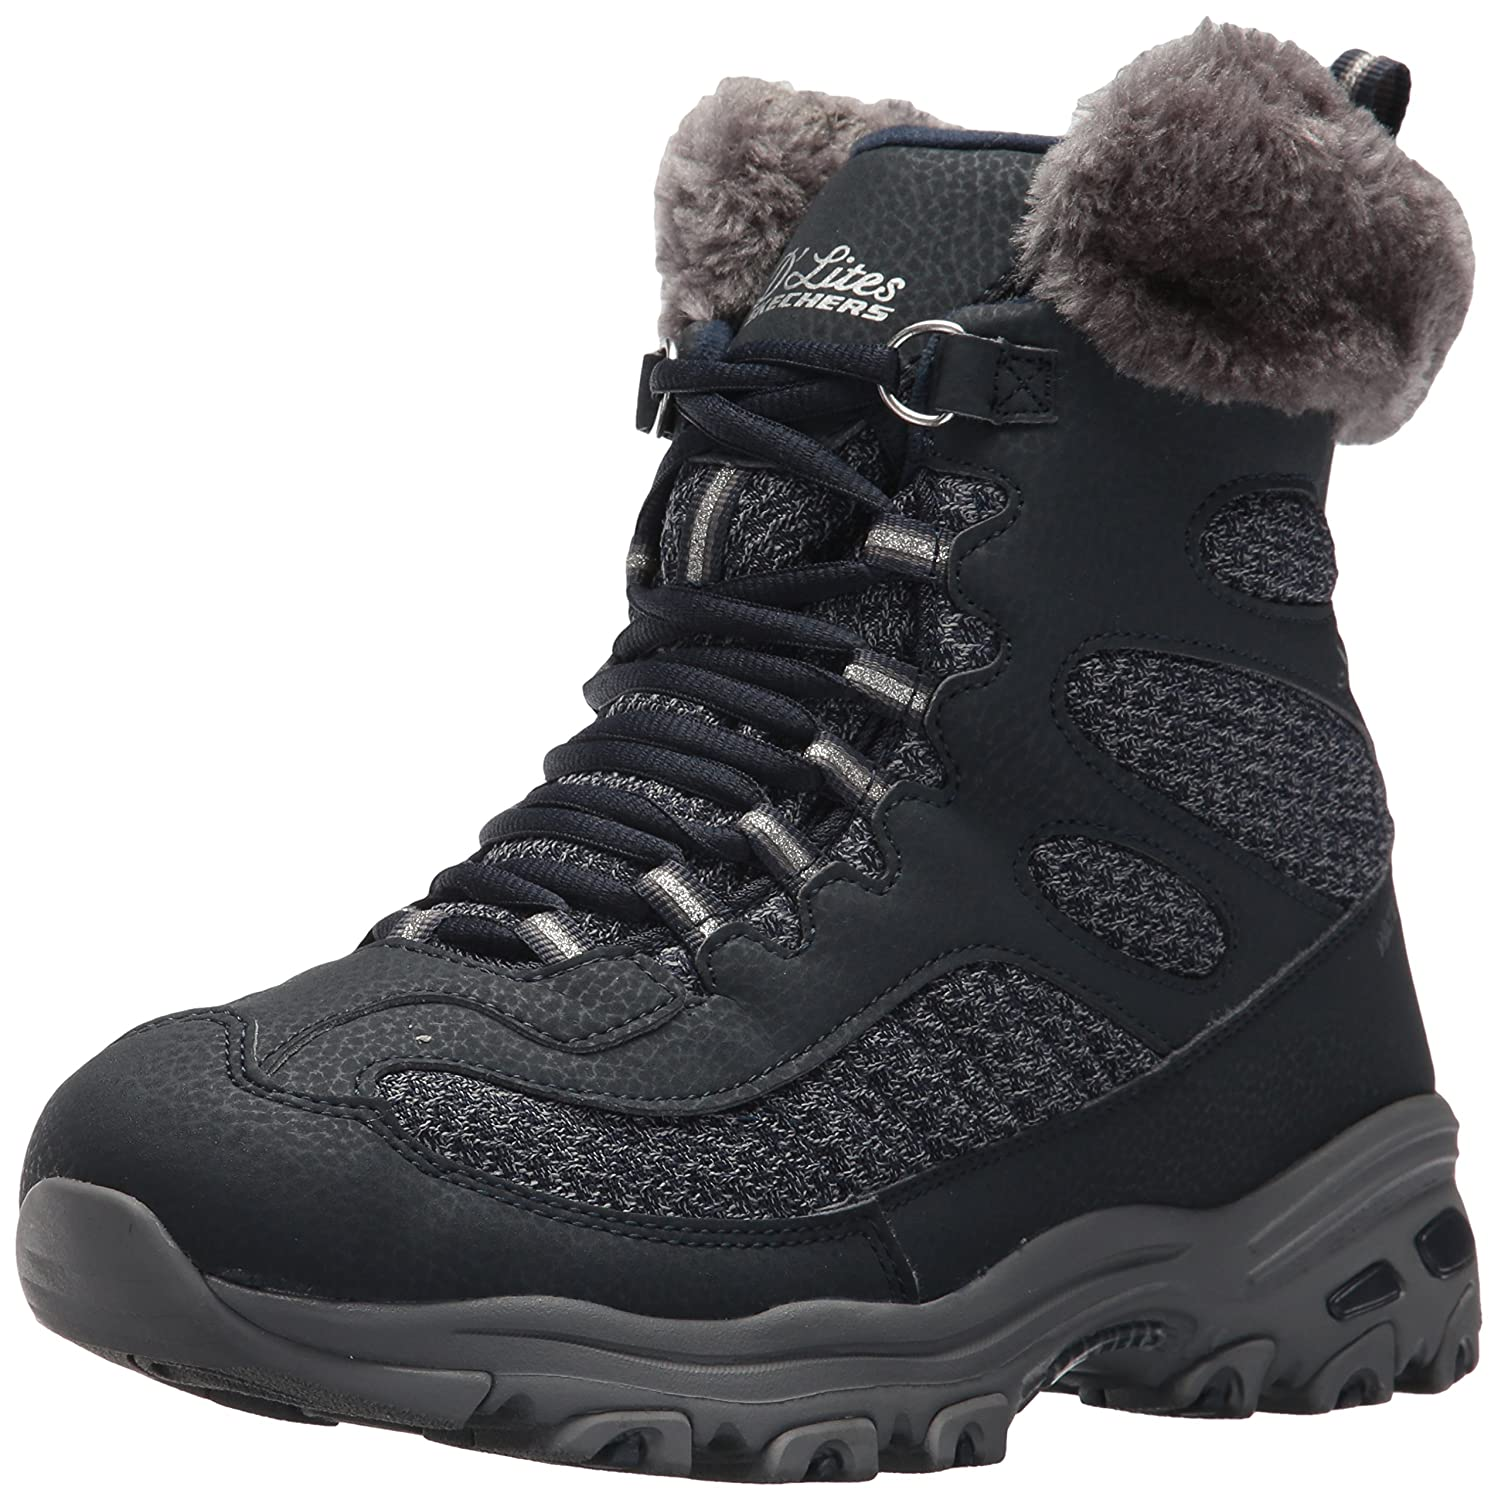 Skechers Women's D'Lites Plaza W Snow Shoe B071FFWFG8 11 W US|Navy